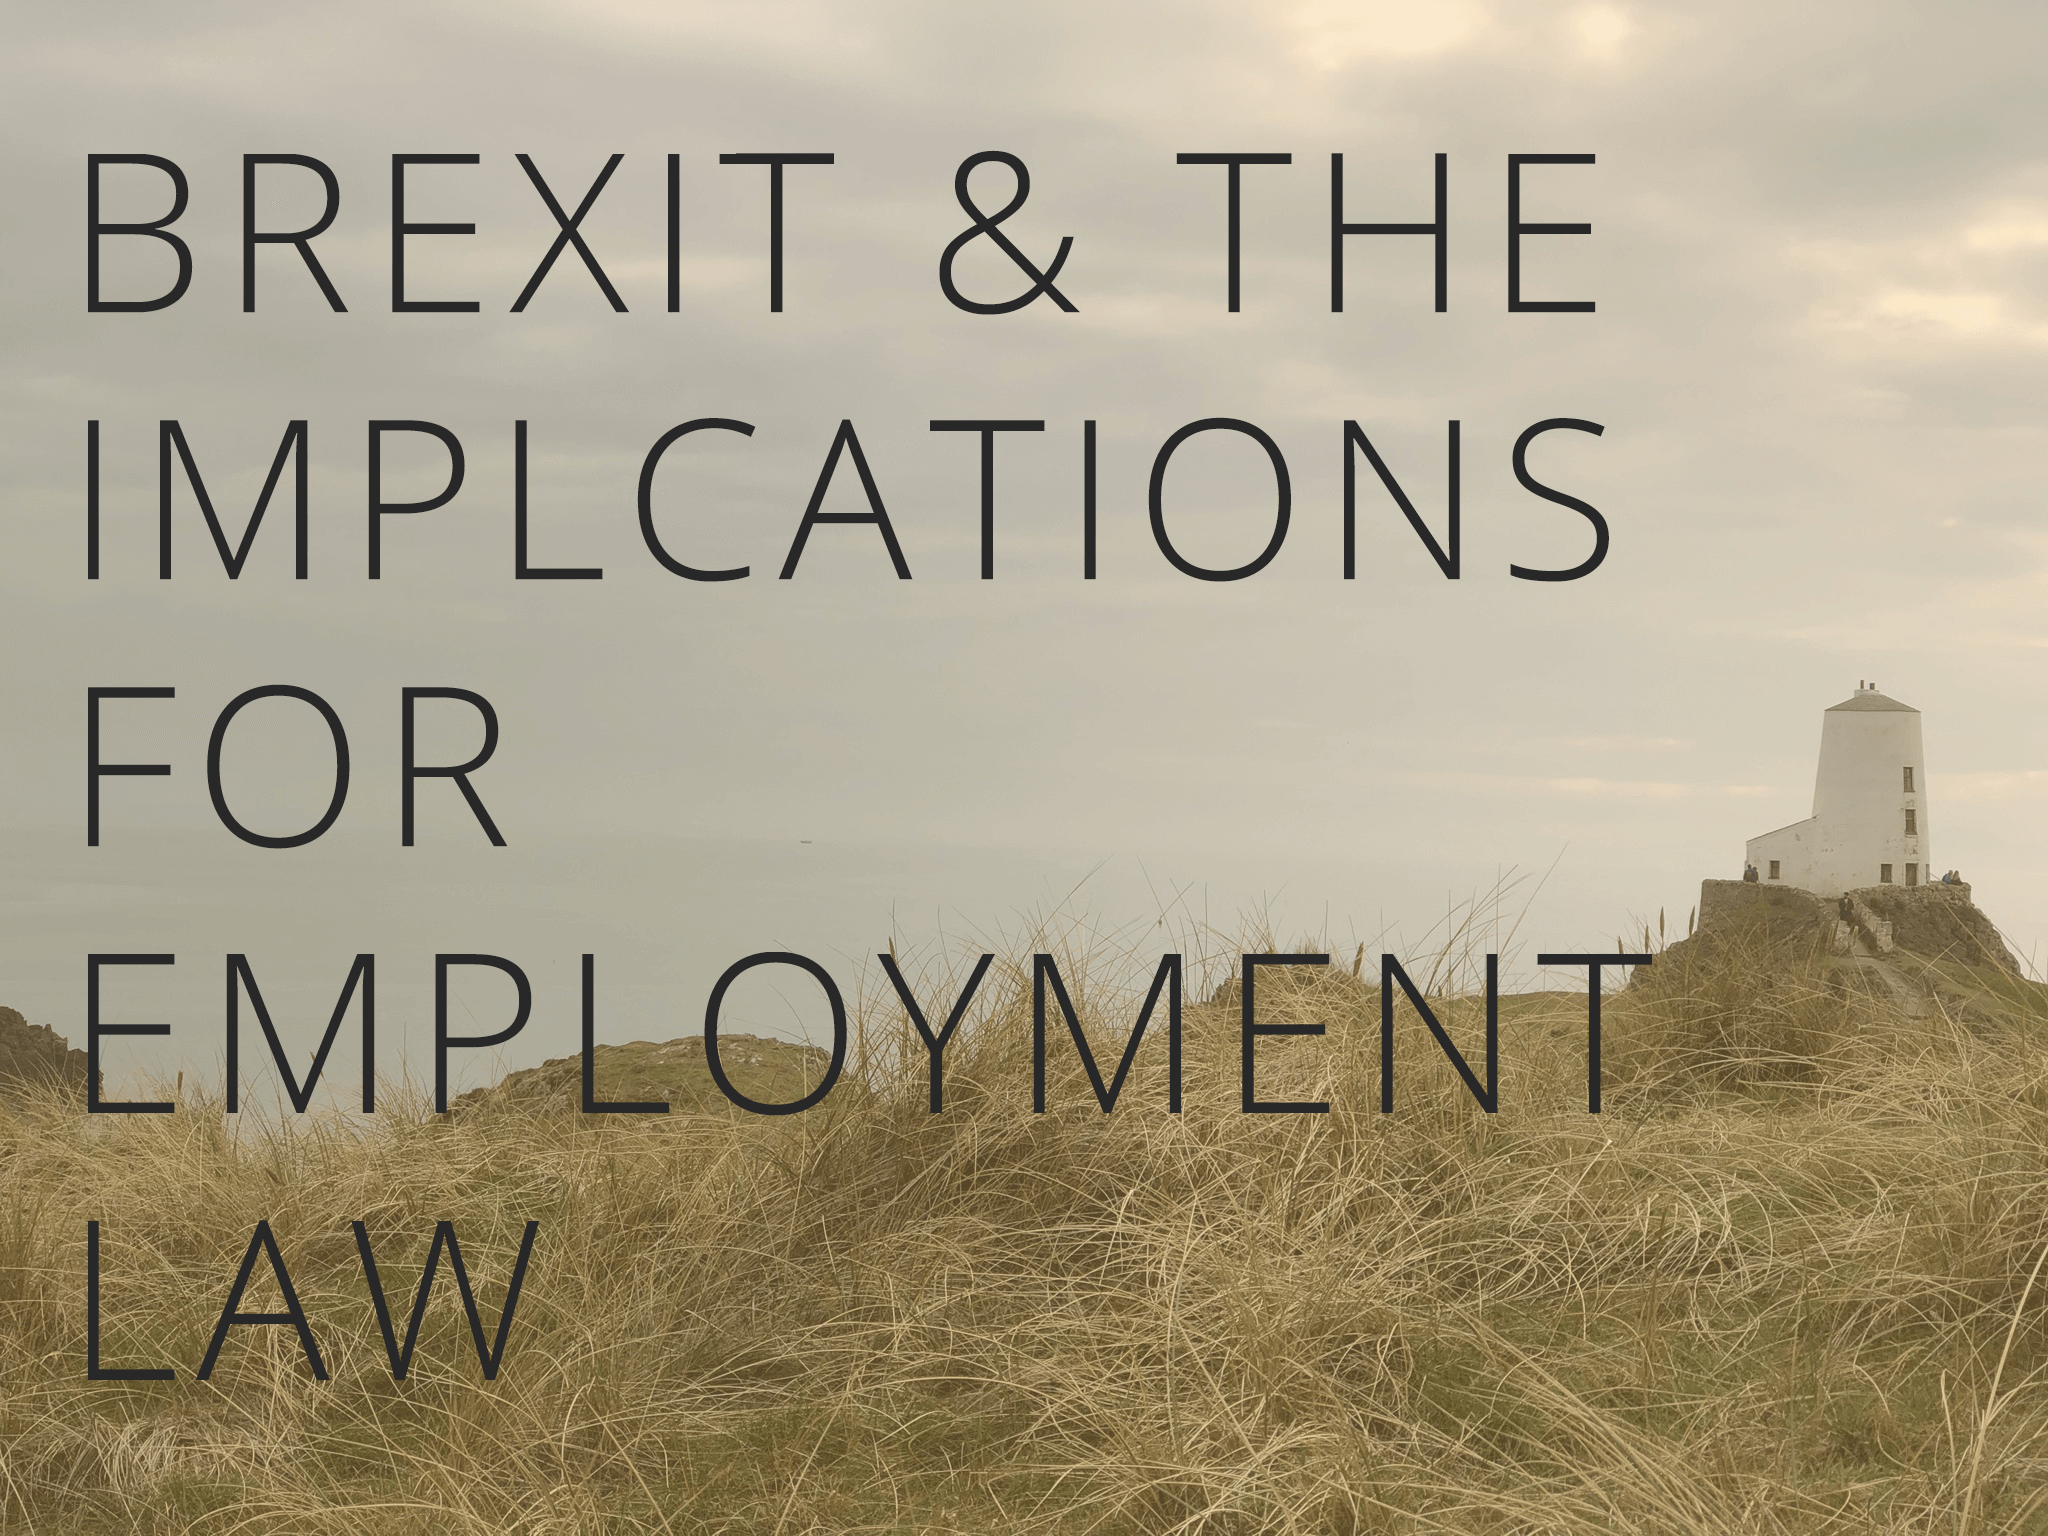 Brexit and the implications for employment law